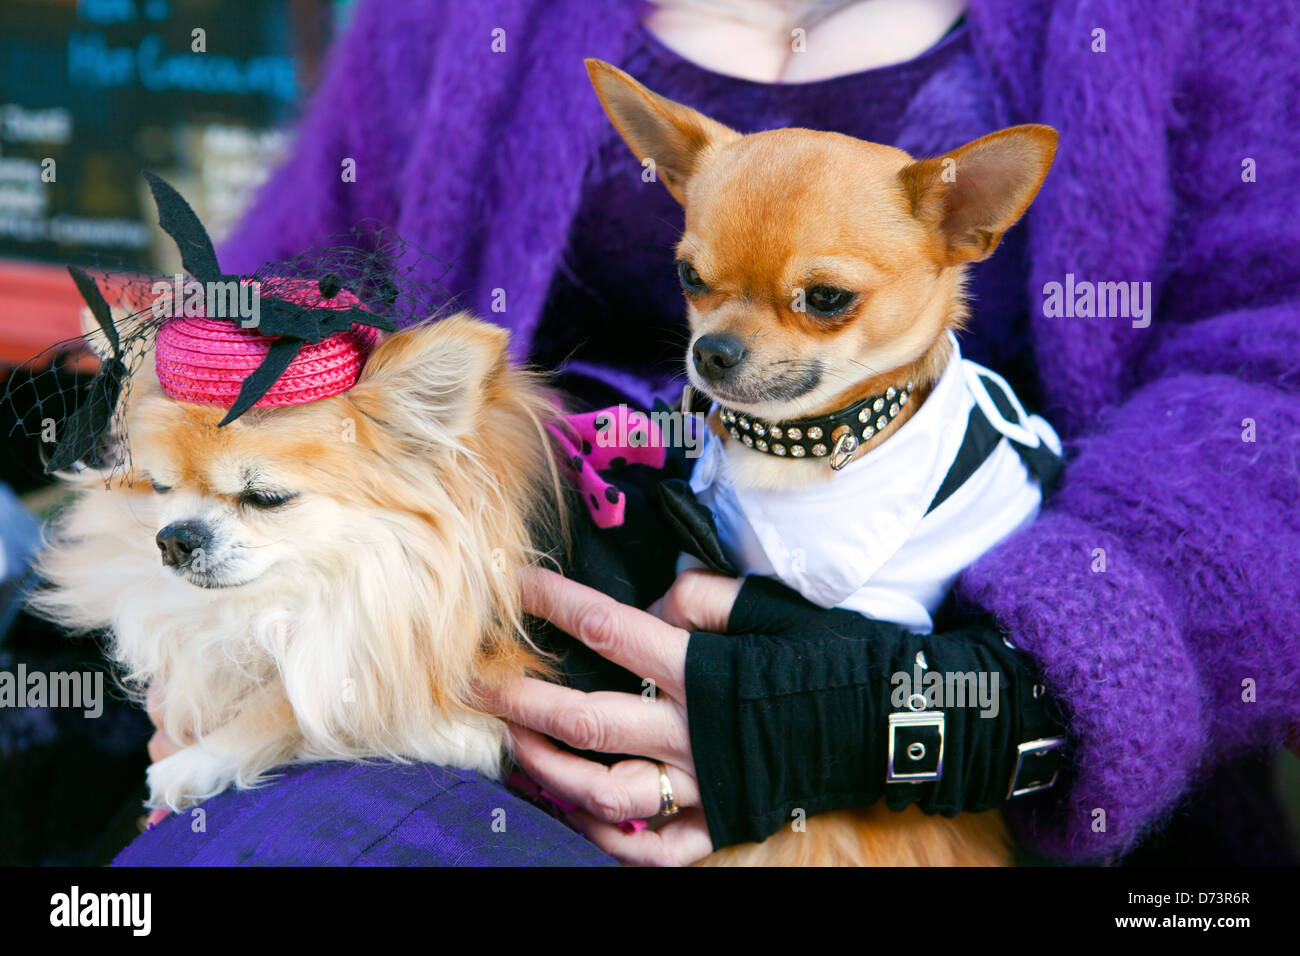 Two elegantly dressed chihuahua dogs in a ladies lap. - Stock Image